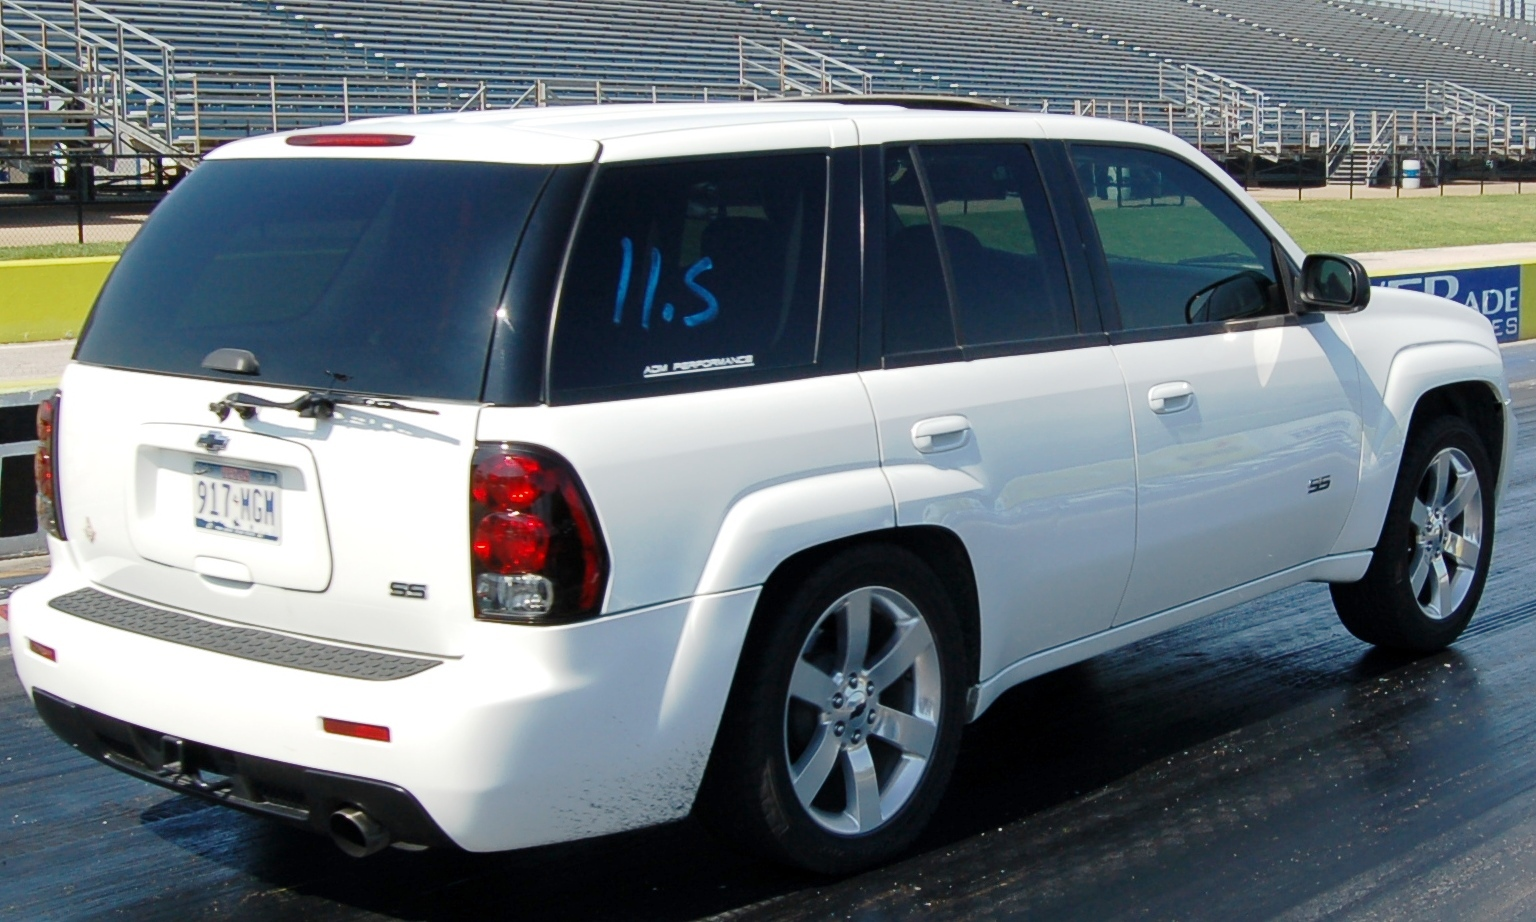 2006 Chevrolet TrailBlazer SS - Motor Pass - On Street Tires